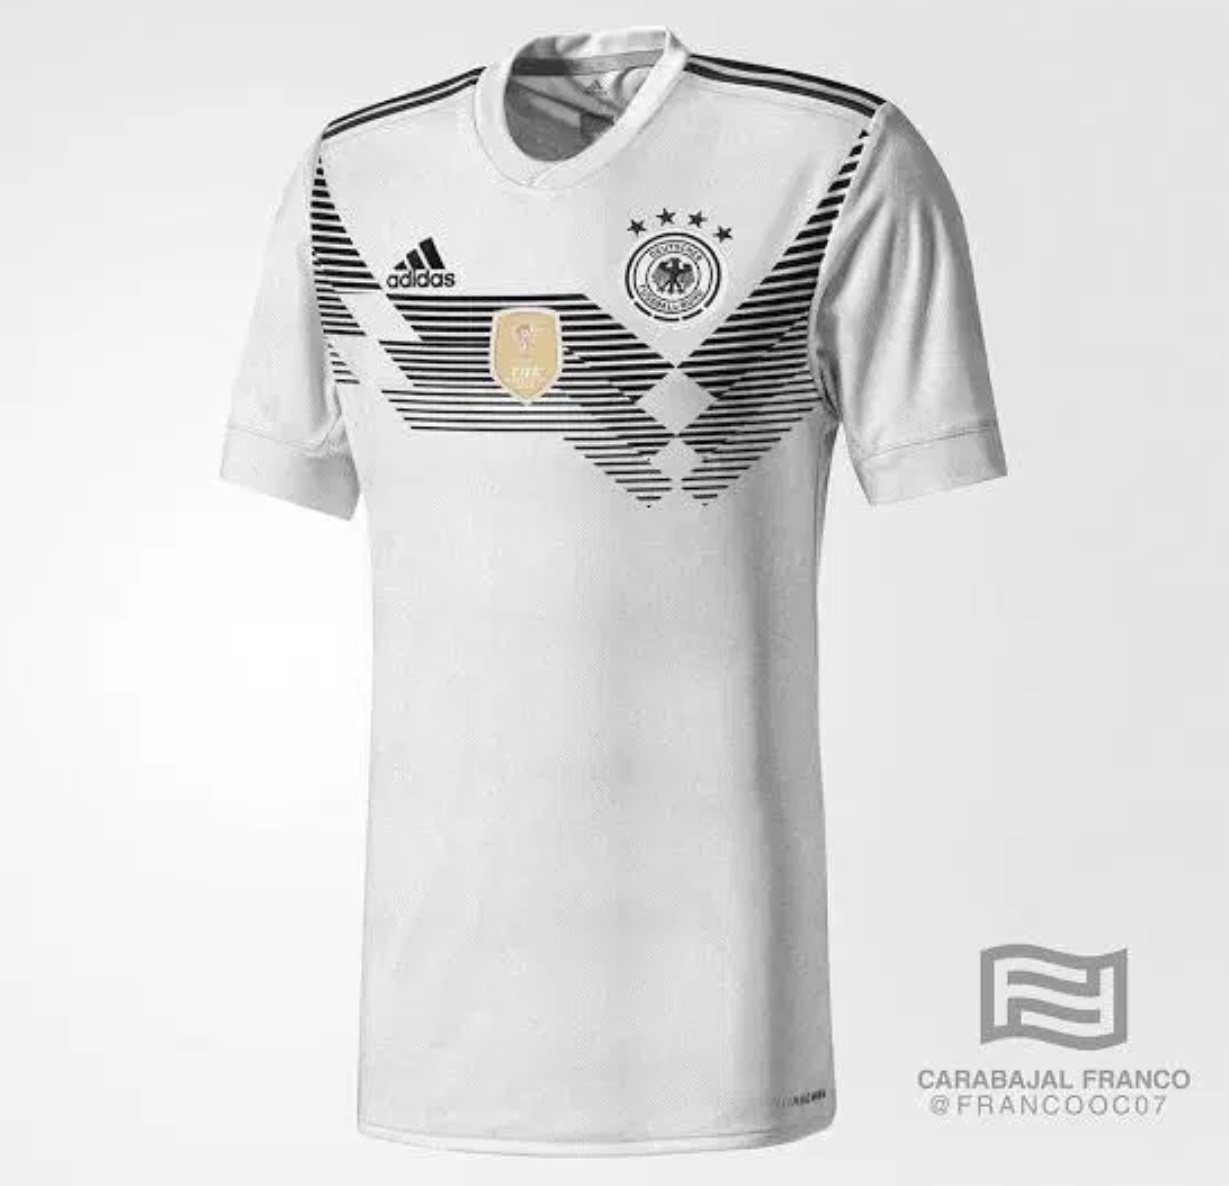 quality design bdd8a ba63c German Football Team Shirts